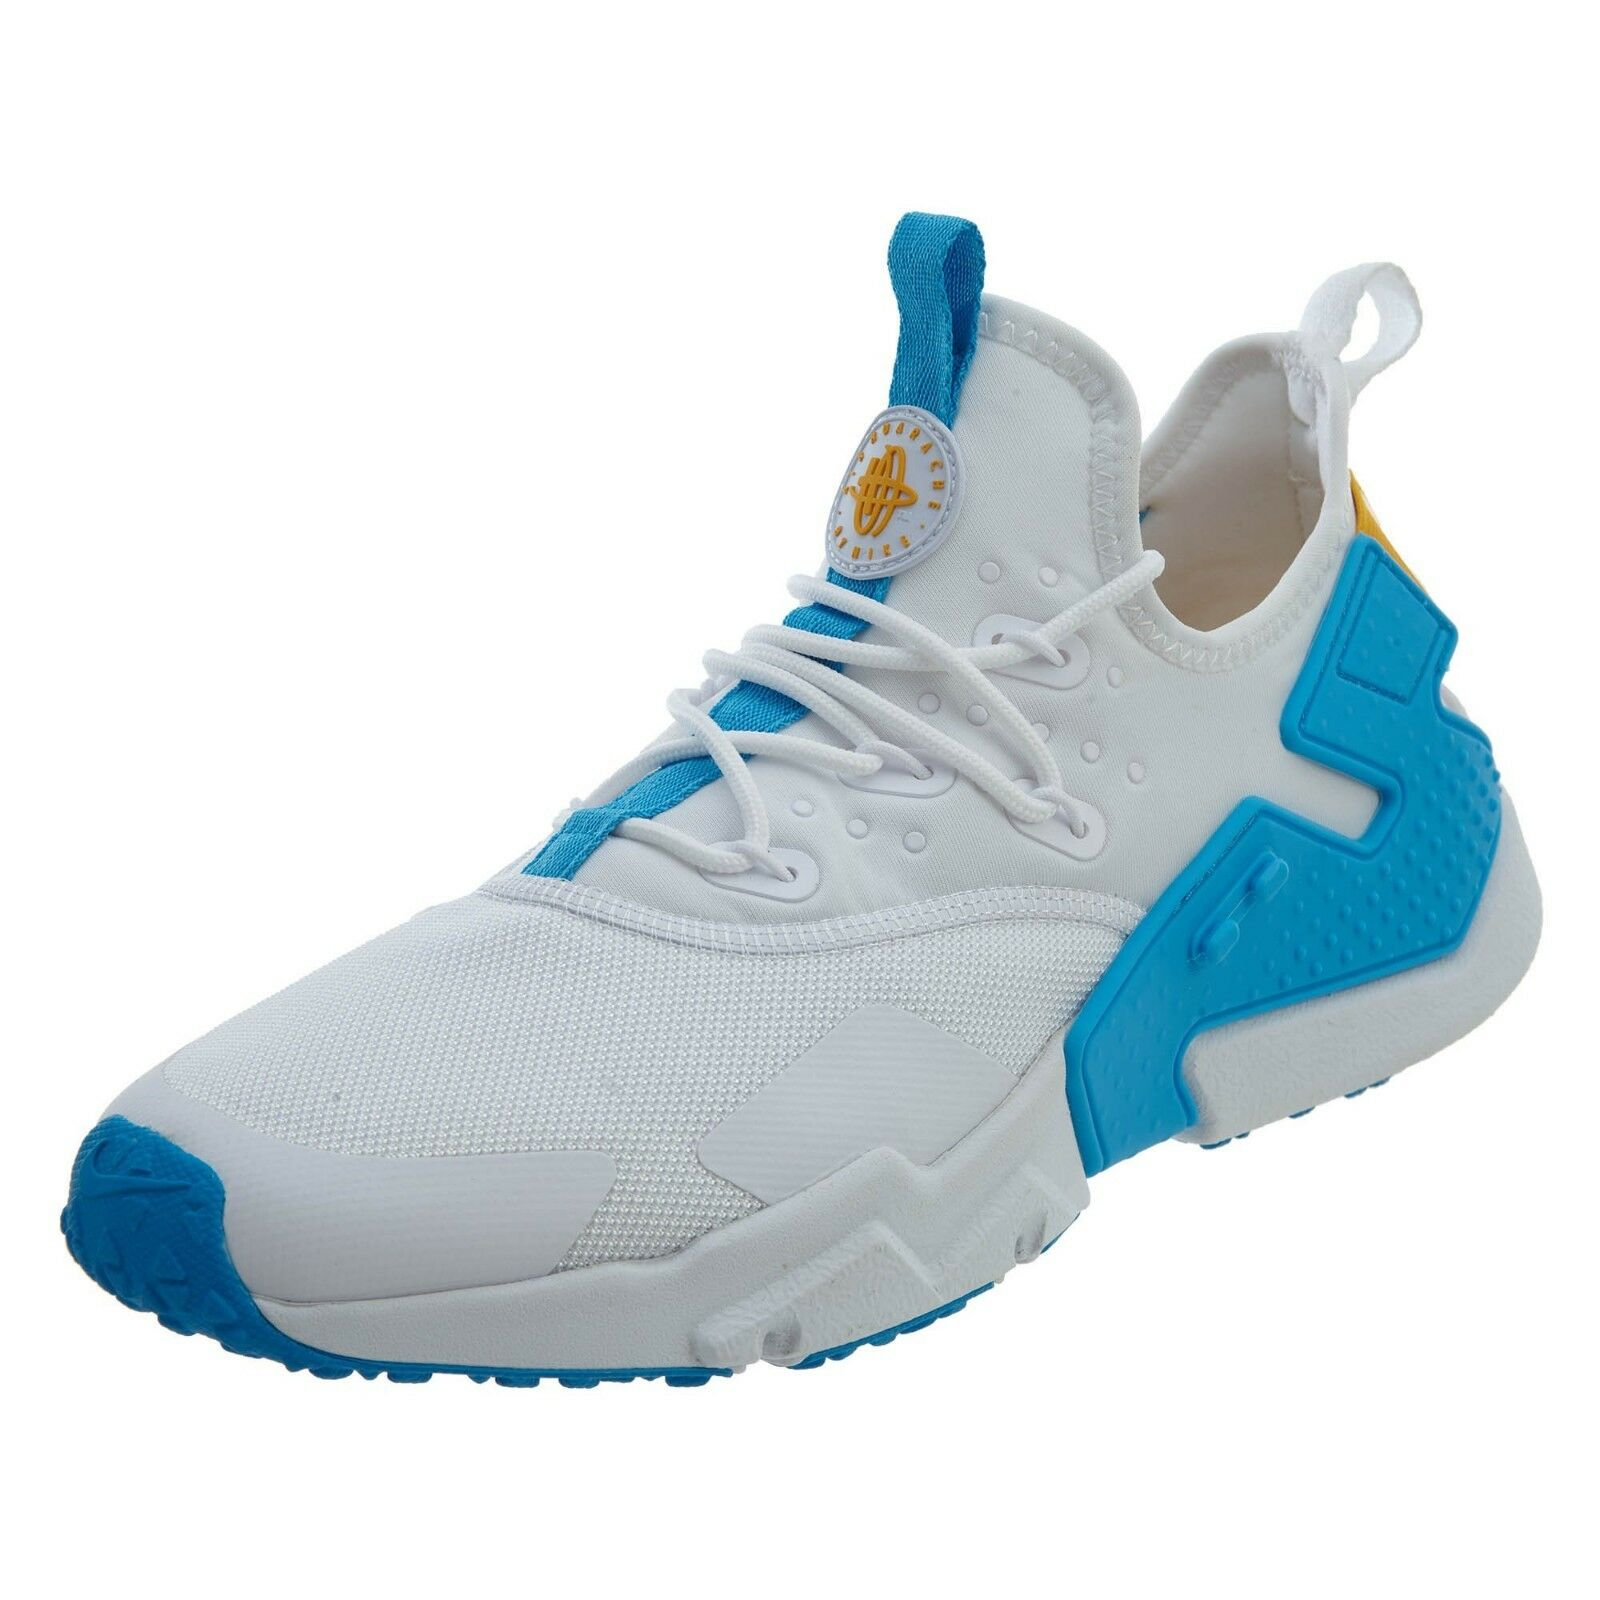 NIKE AIR HUARACHE RUN DRIFT AH7334 101 SZ 11 WHITE EQUATOR blueE UNIVERSITY gold